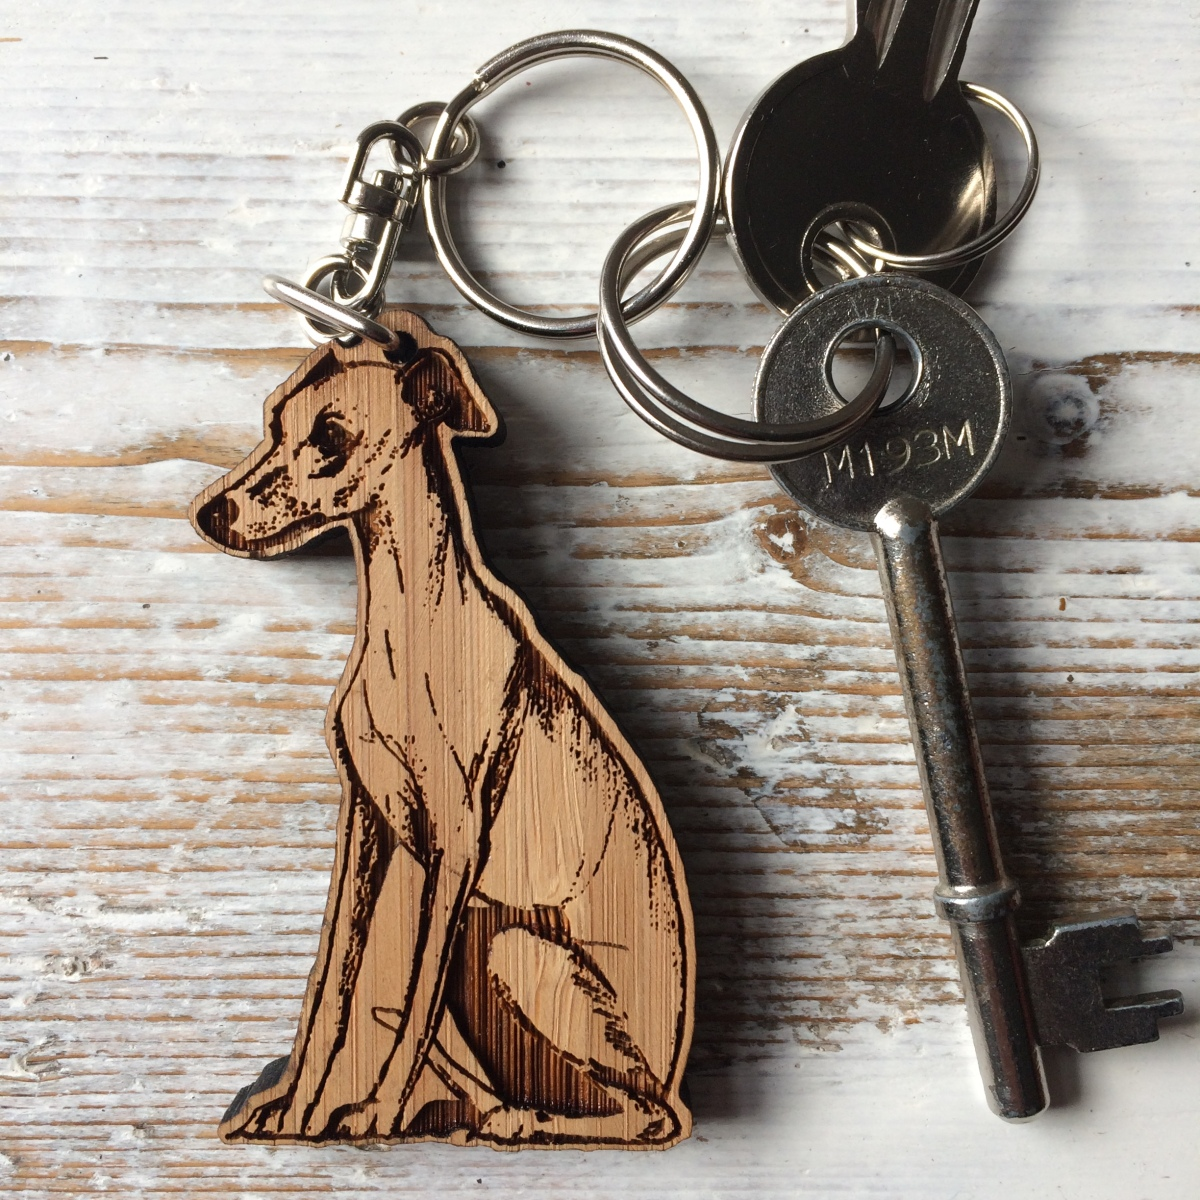 whippet_therhubarbtree